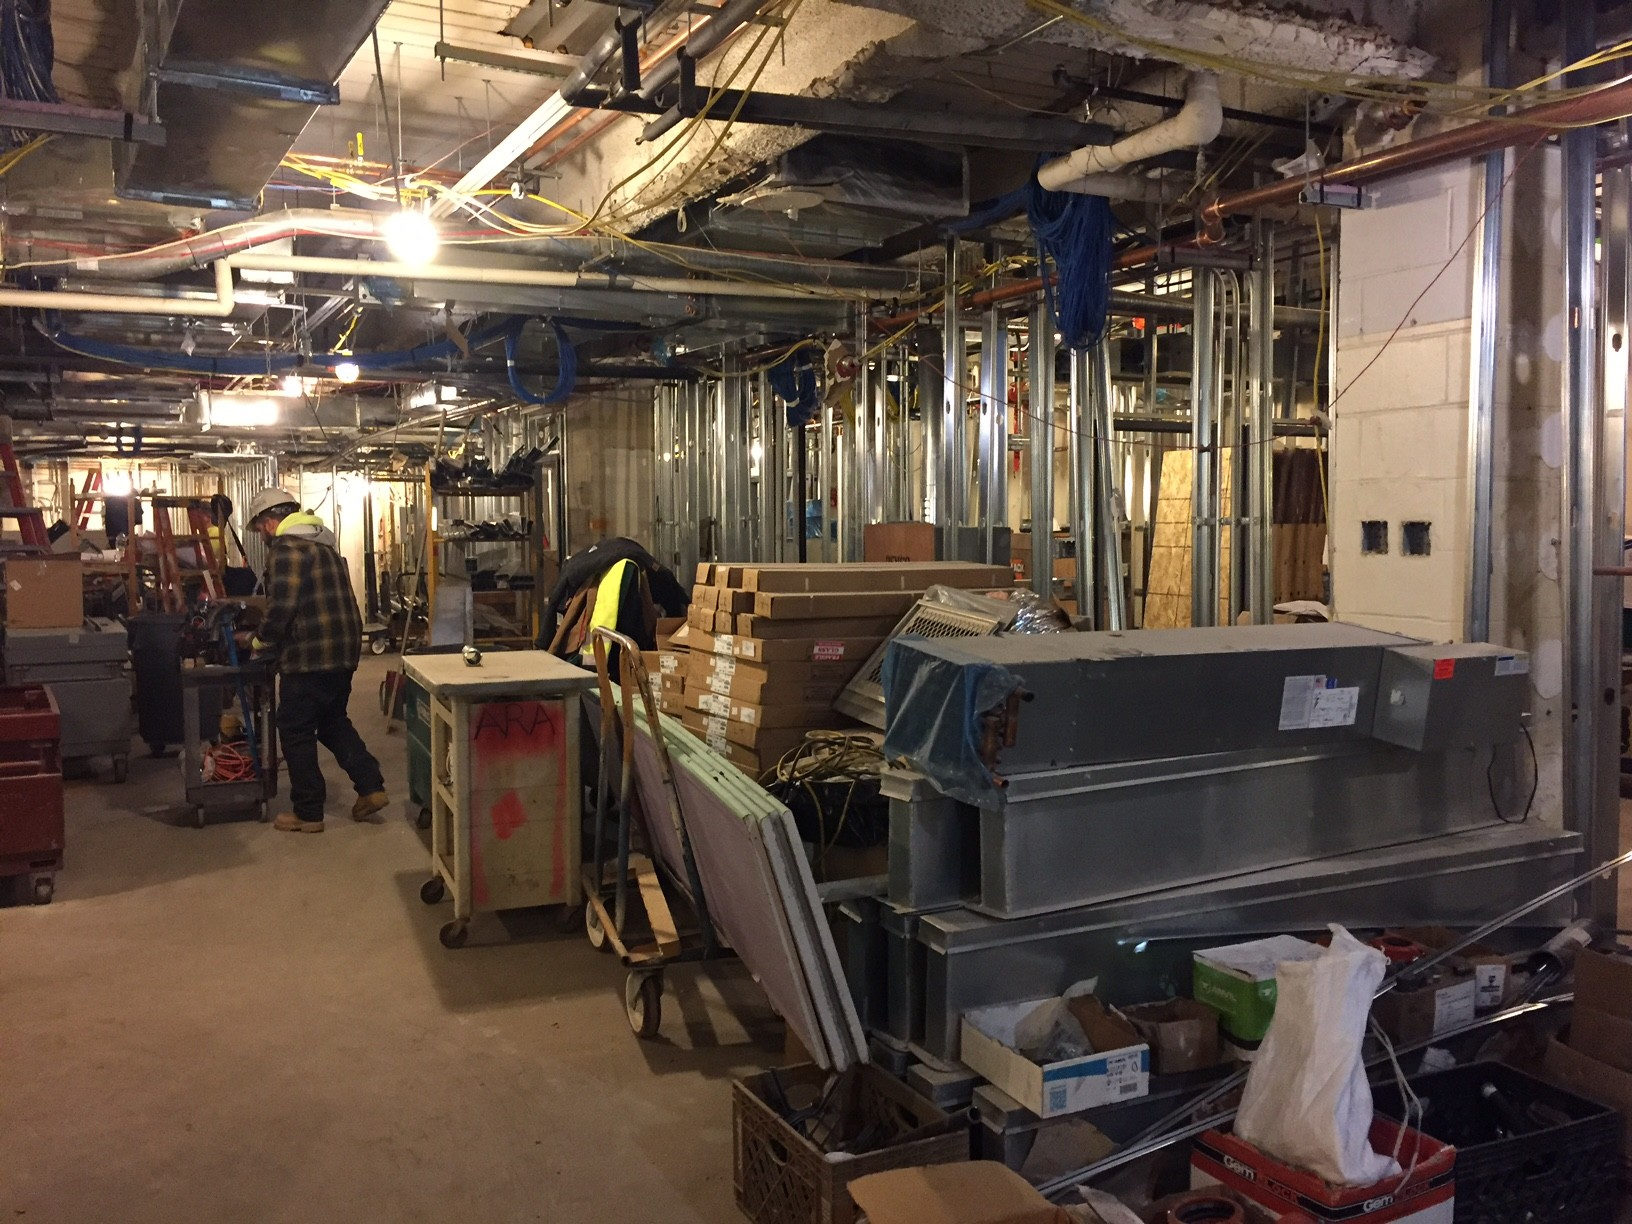 Workers are clearing a large machine room to free up 2,500 square feet for clinical space in South Nassau Communities Hospital's emergency department.